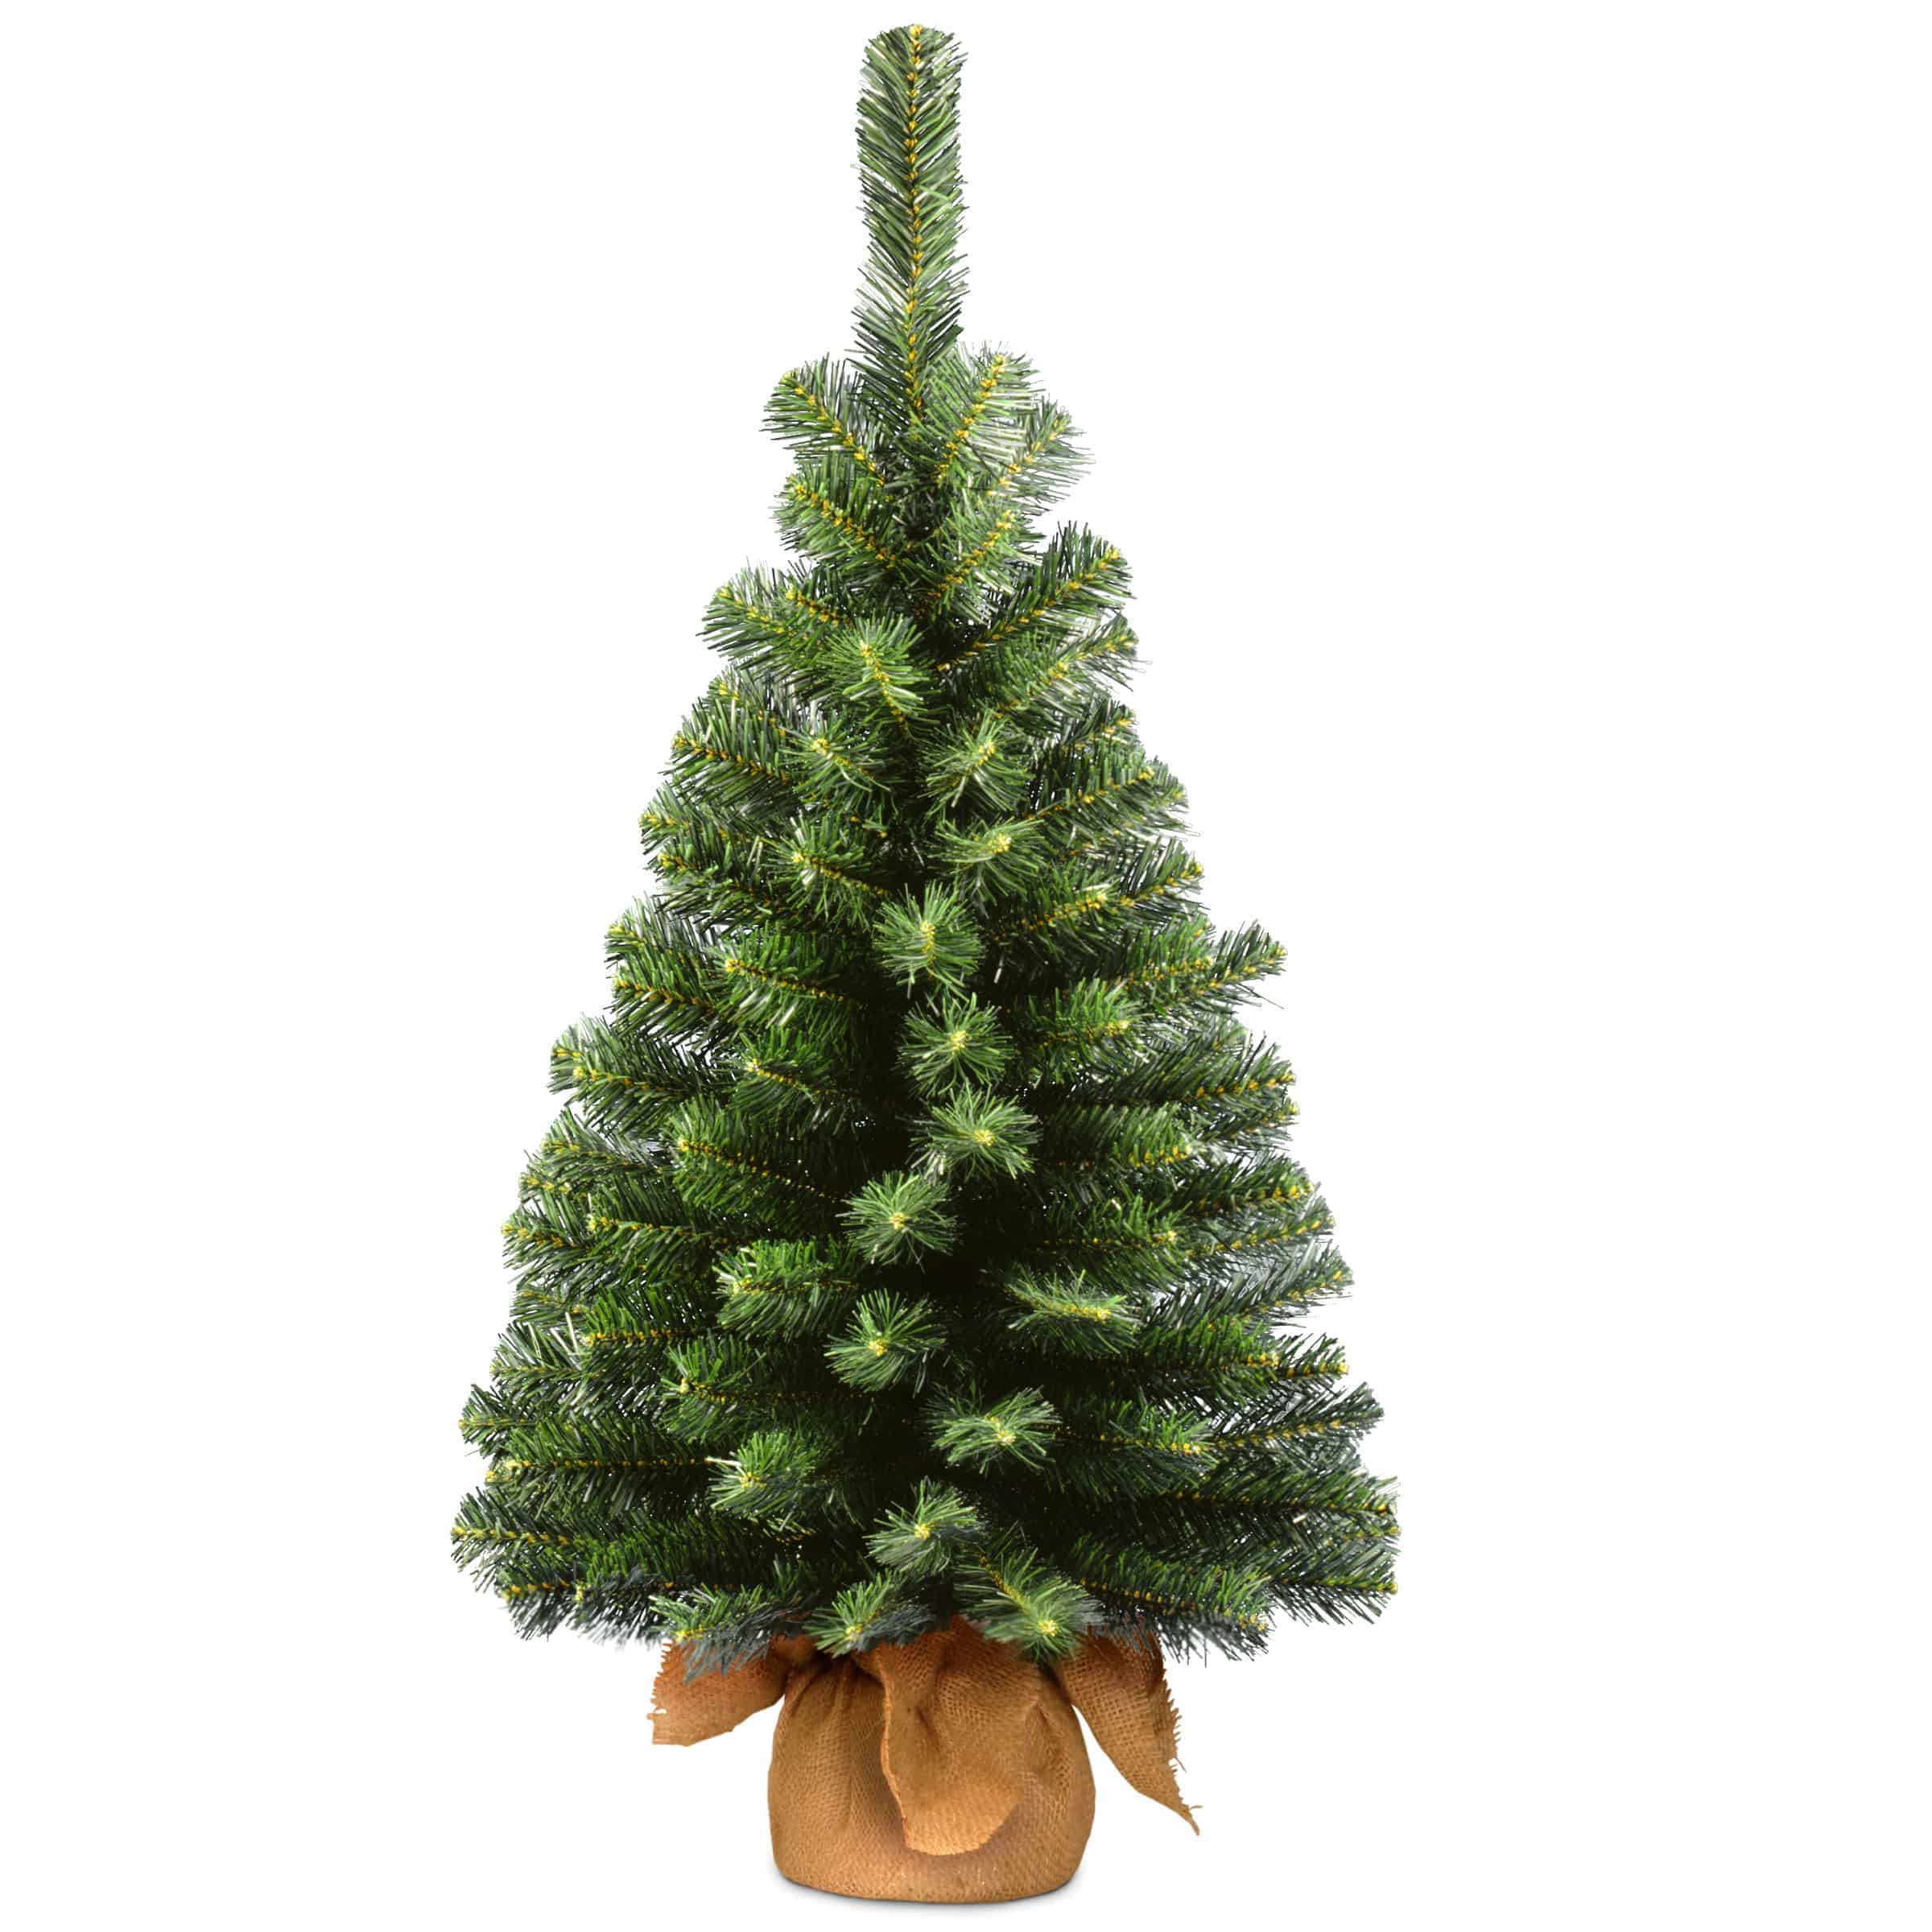 Artificial Christmas Trees Un Lit Christmas Trees Mini Artificial Christmas Trees Un Lit 3ft Noble Spruce Mini Artificial Christmas Tree In Burlap Sack Christmasland Ie